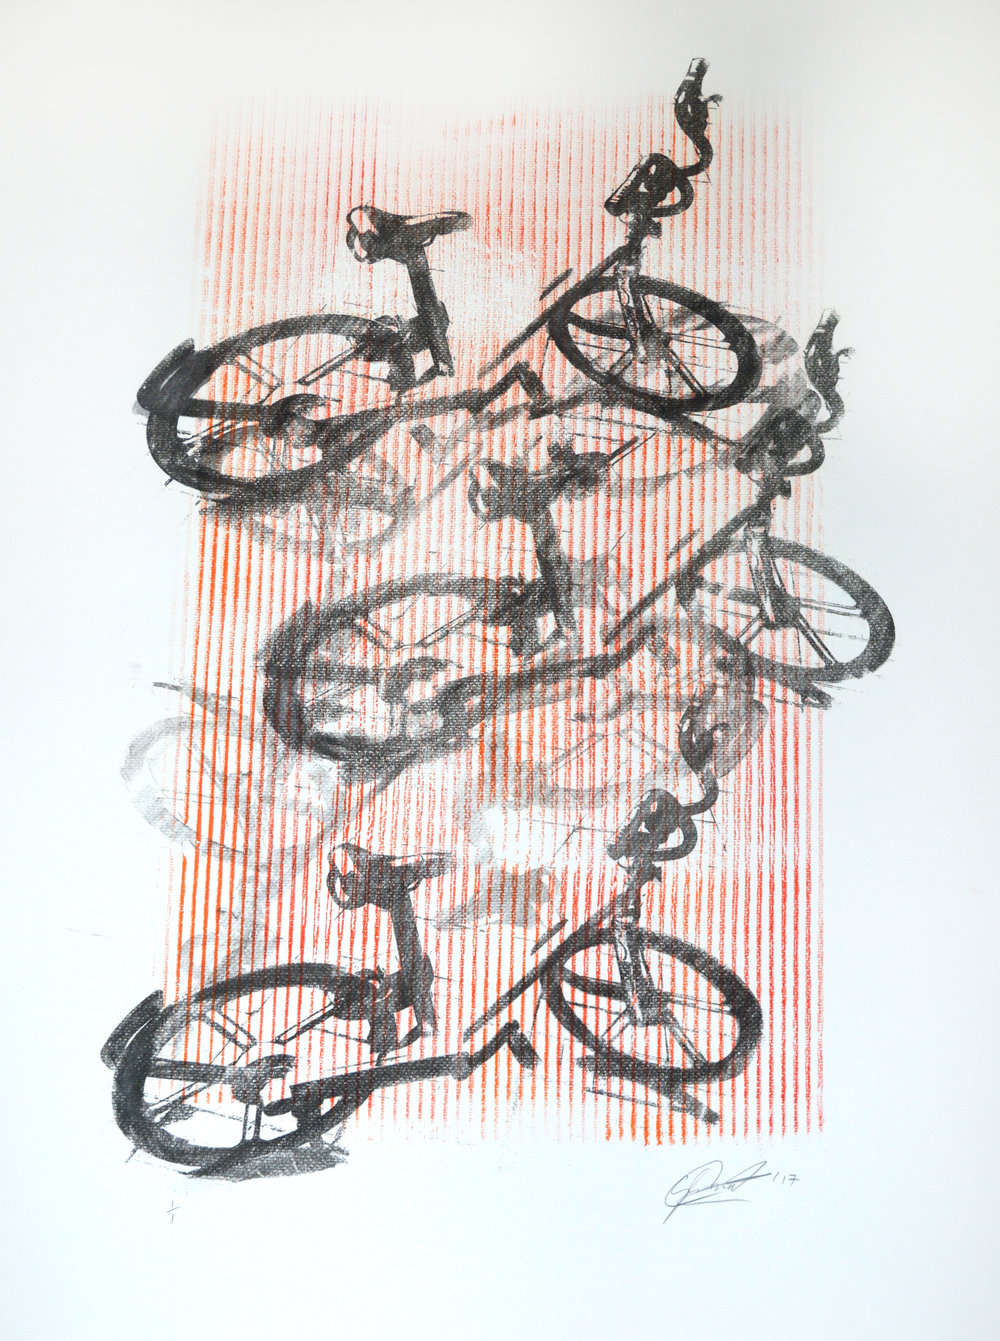 Bikes 4 - Monoprint on Paper. 65x85 cm. 2017.